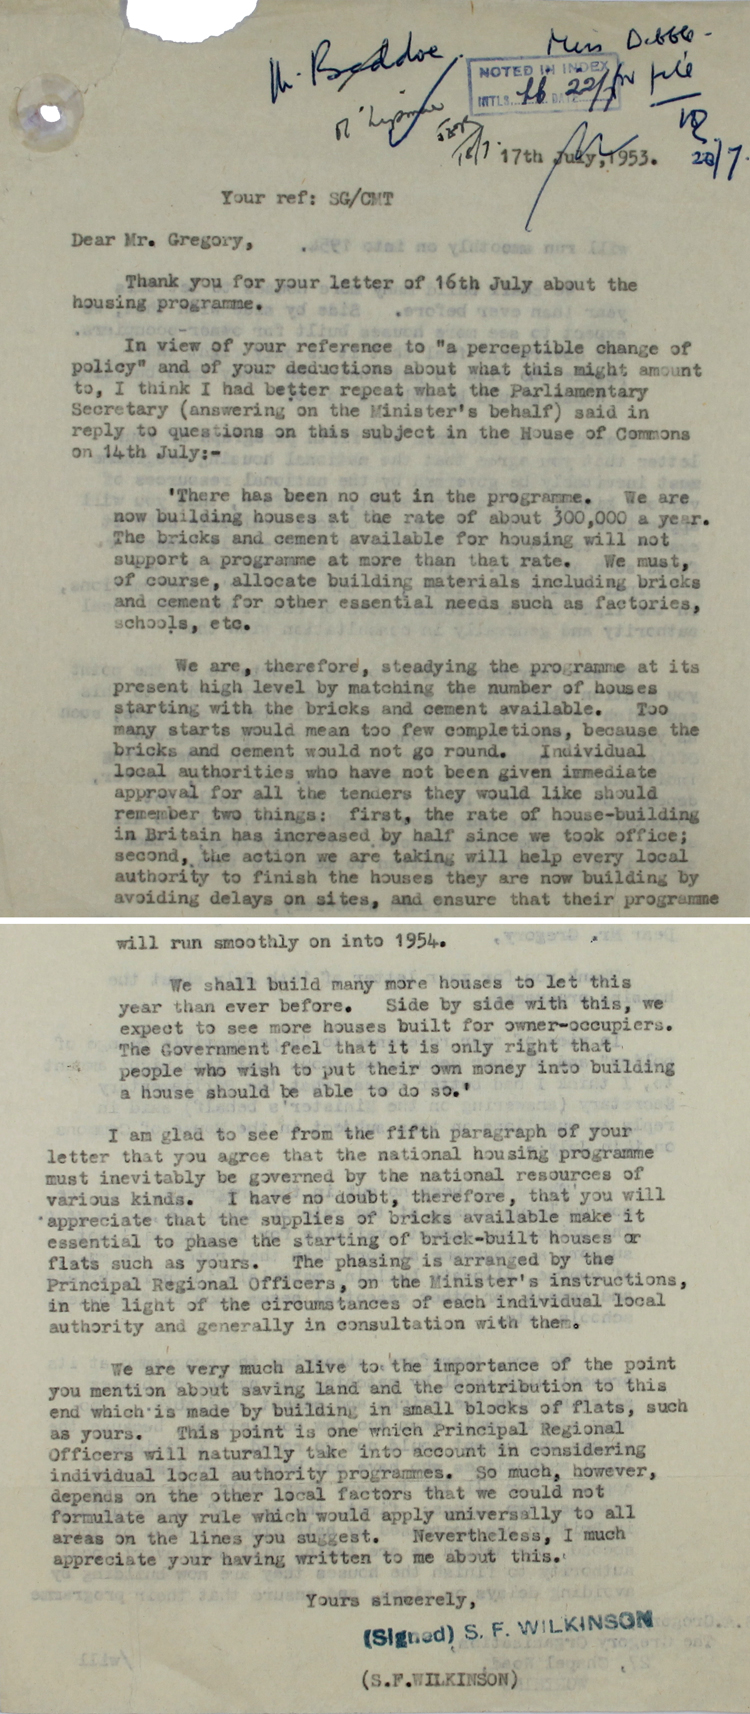 Letter from Mr. S. F. Wilkinson at the Ministry of Housing & Local Government to Mr. Gregory, head of a building company, 17th July 1953 (HG 101/812)